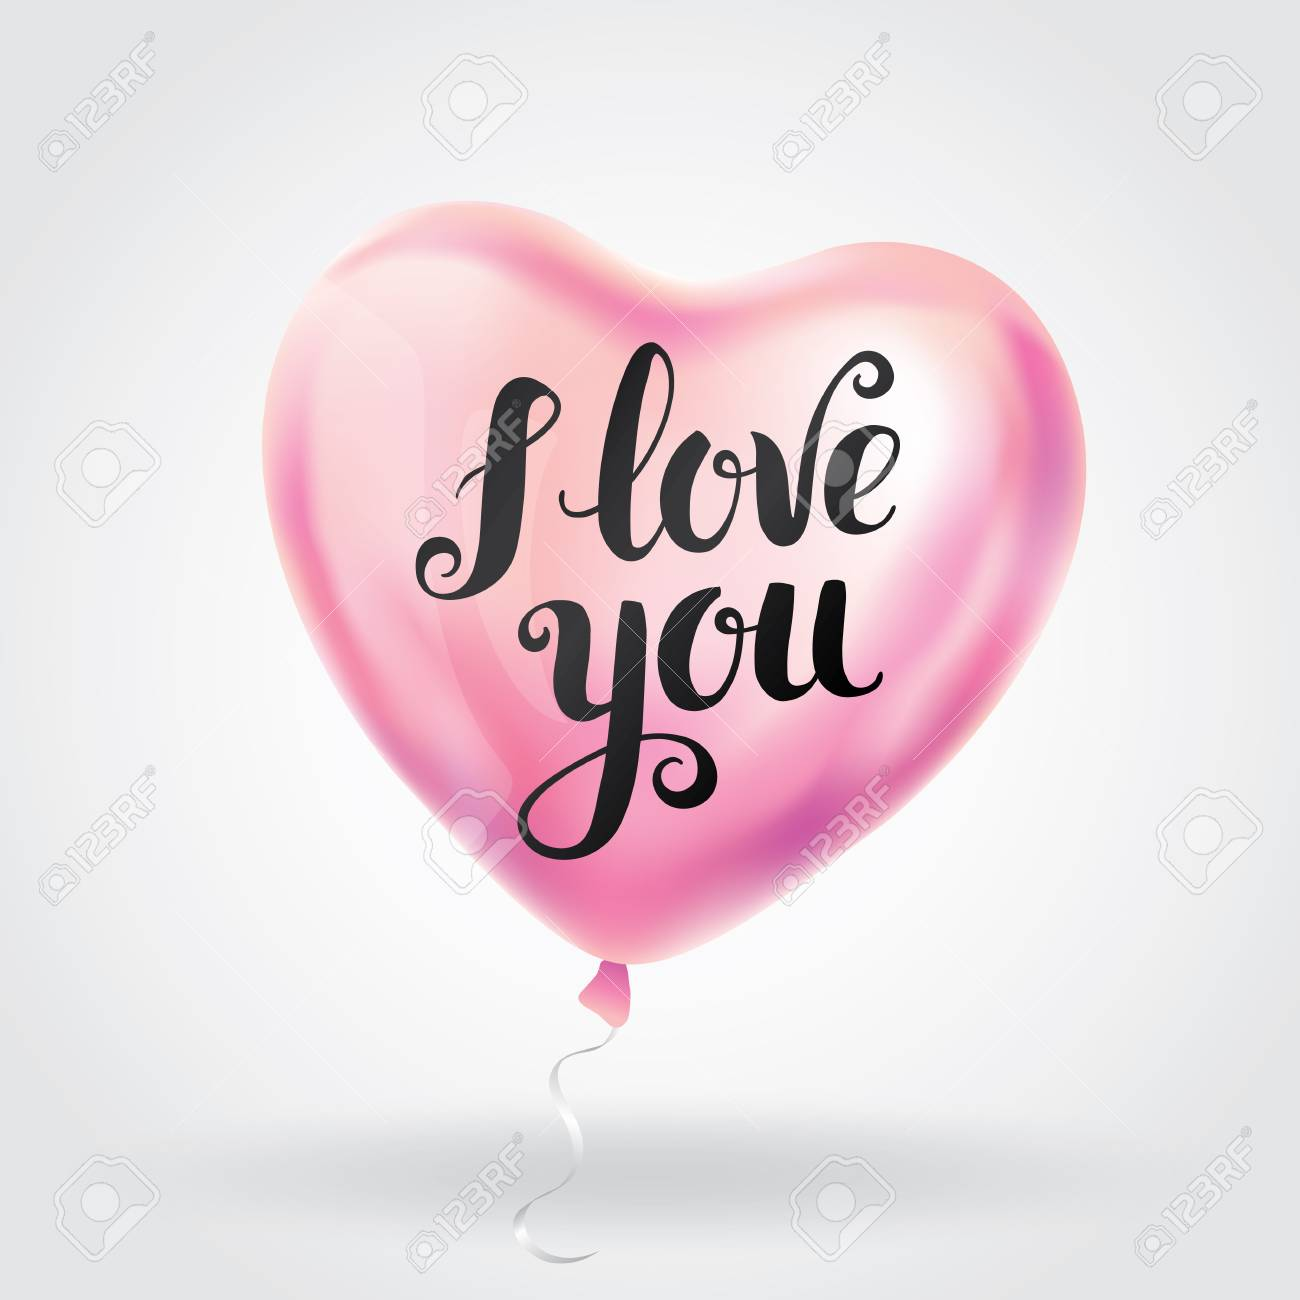 Pink heart balloon i love you happy valentines dayeeting card happy valentines dayeeting card sign banner valentine shine calligraphy text type typography 14 february romantic love greeting card lovely gift m4hsunfo